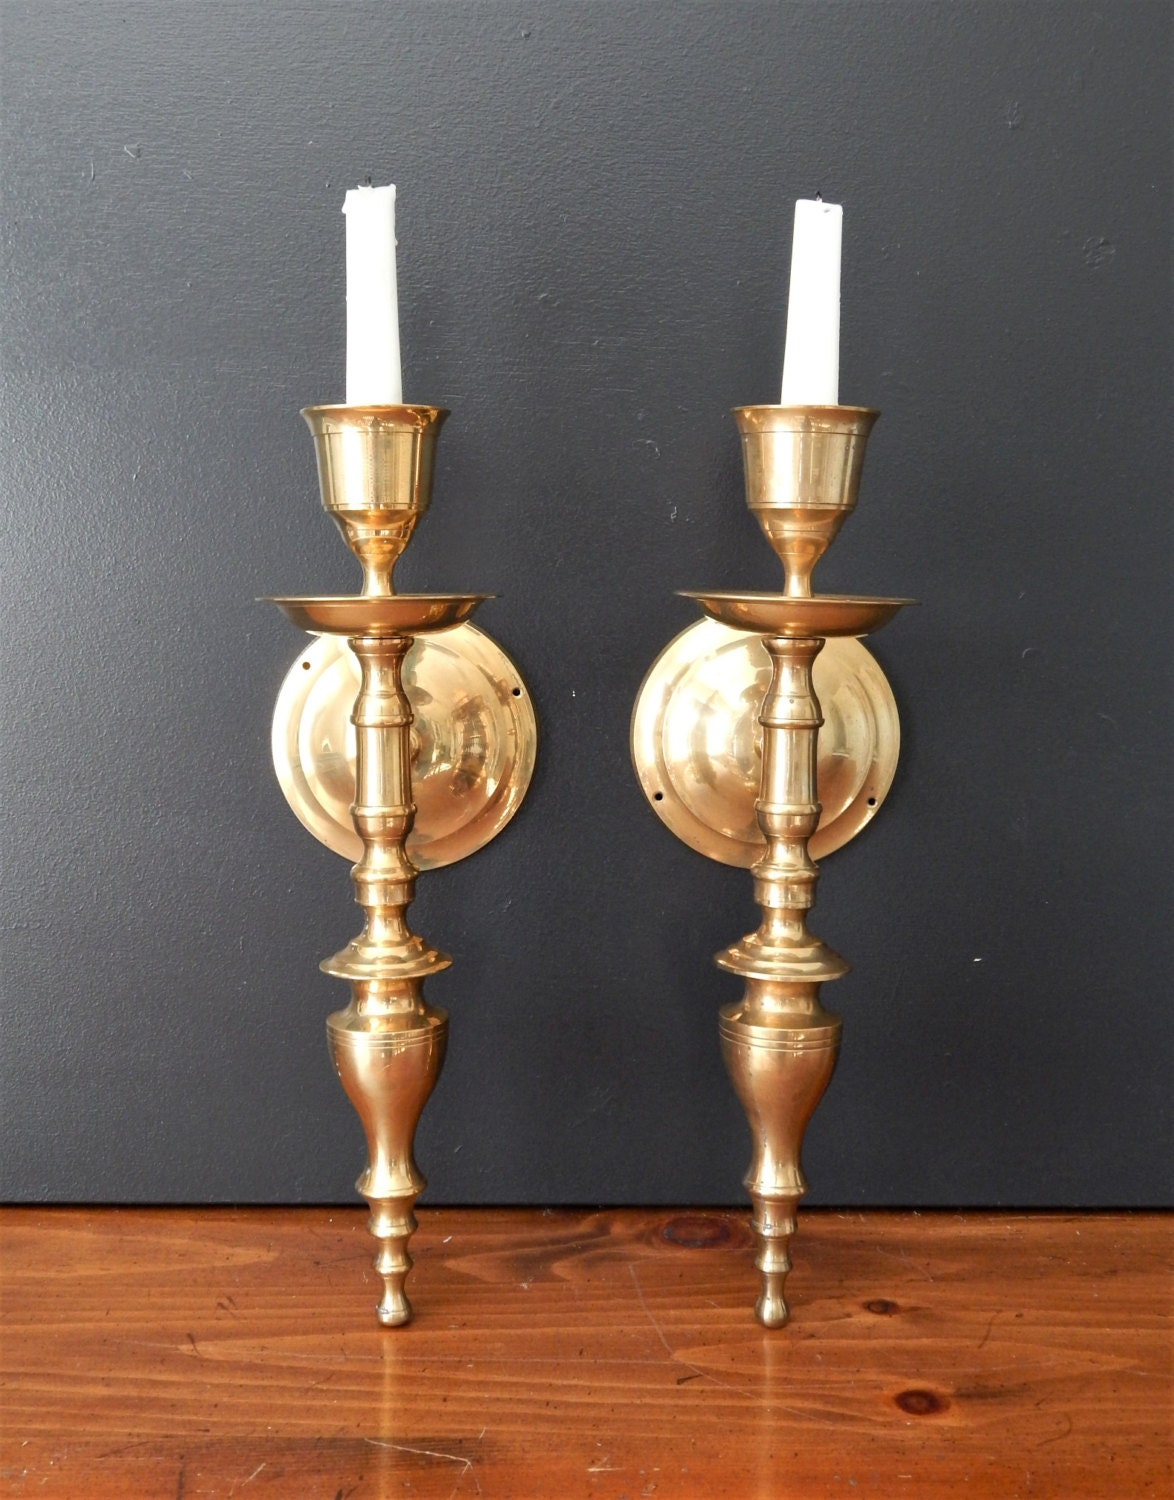 Candle Wall Sconces Vintage : Large vintage brass candle sconces/Candle by NashvilleKindofLife